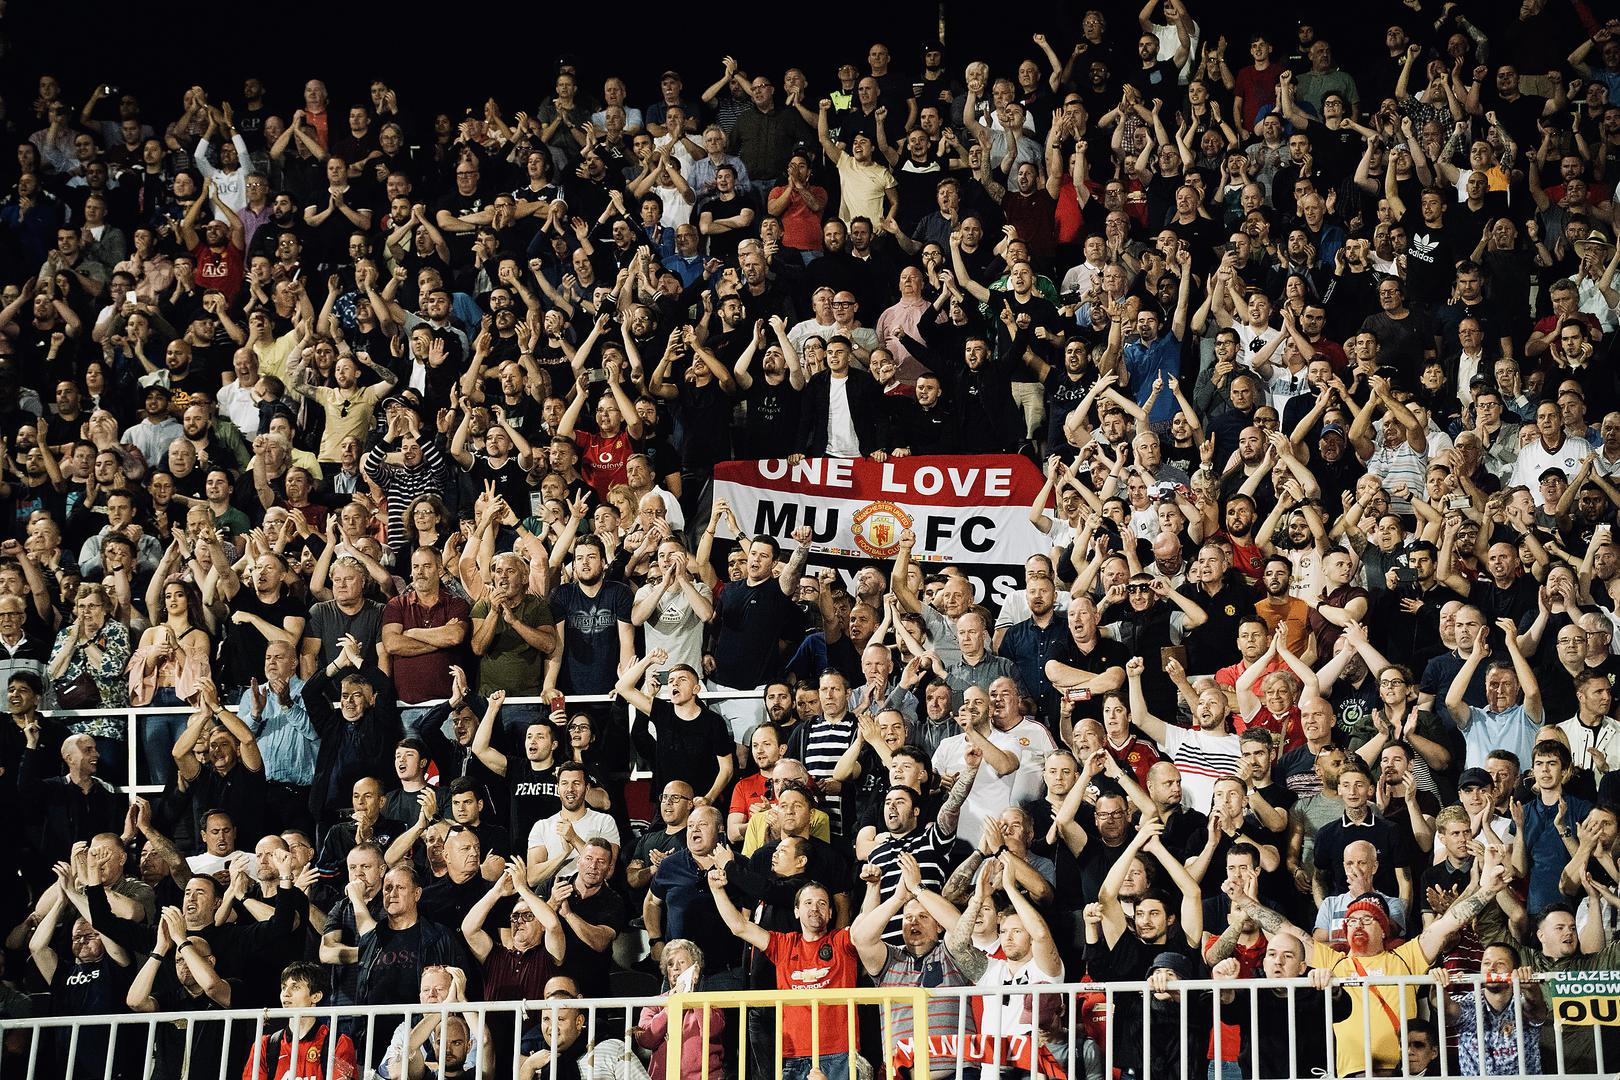 Manchester United fans in the crowd at the Europa League away game against Partizan Belgrade